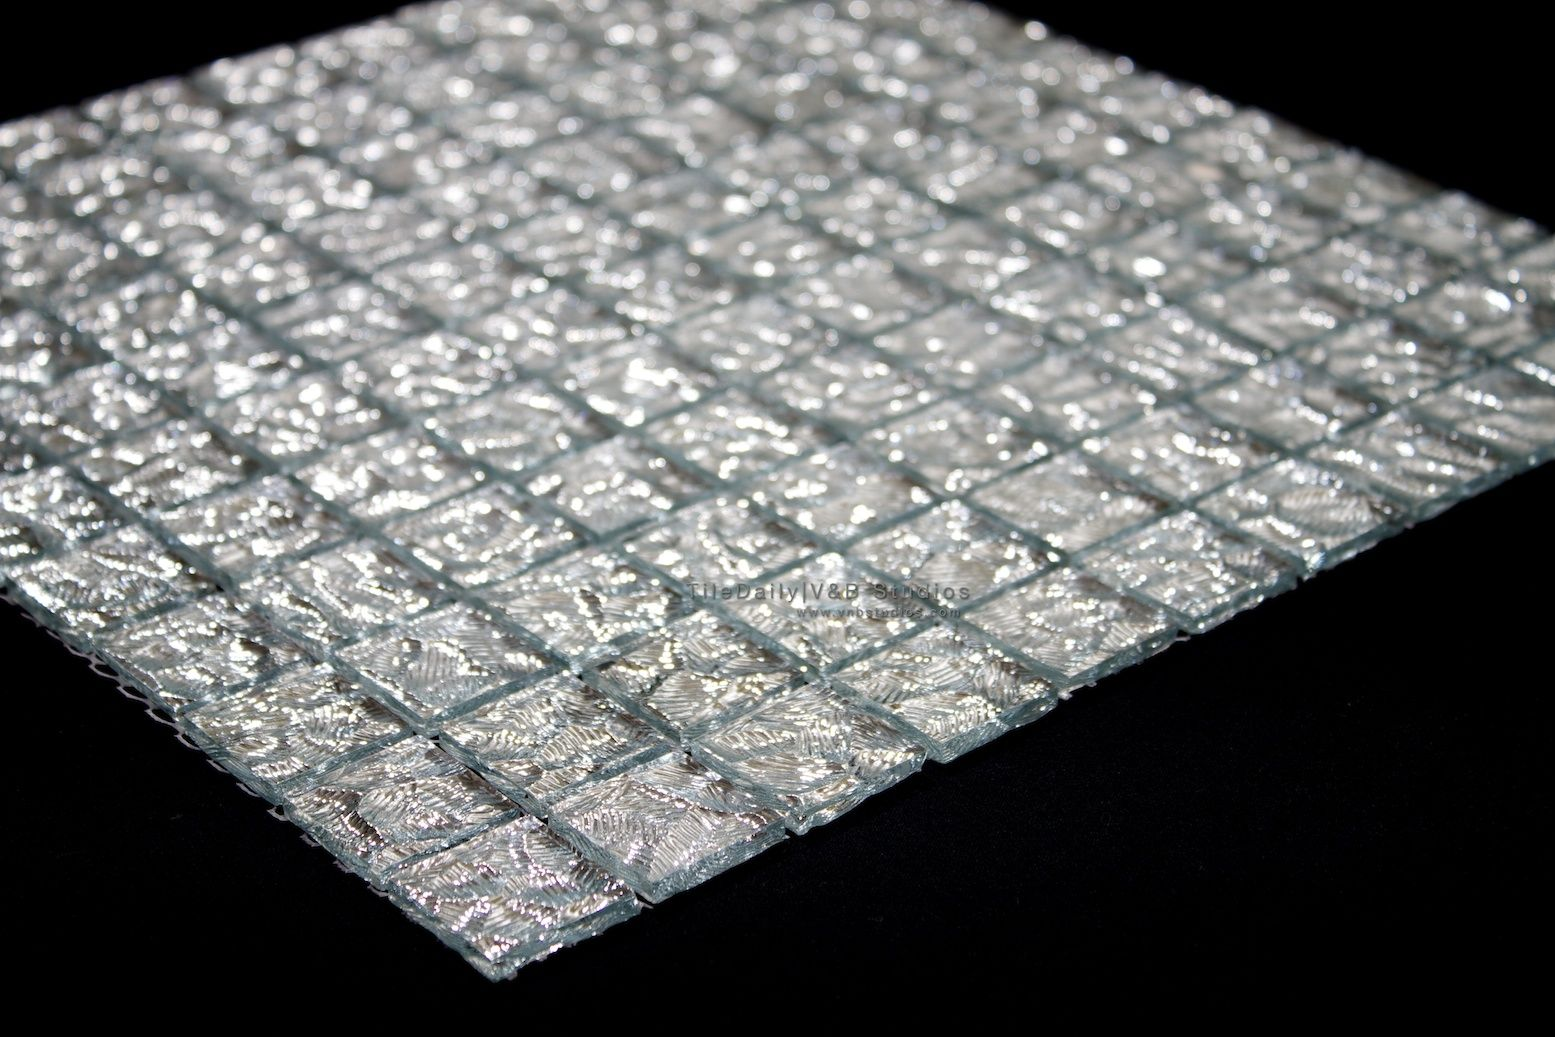 17 Best images about glass tiles on Pinterest | Green homes, Glass mosaic  tiles and Custom glass